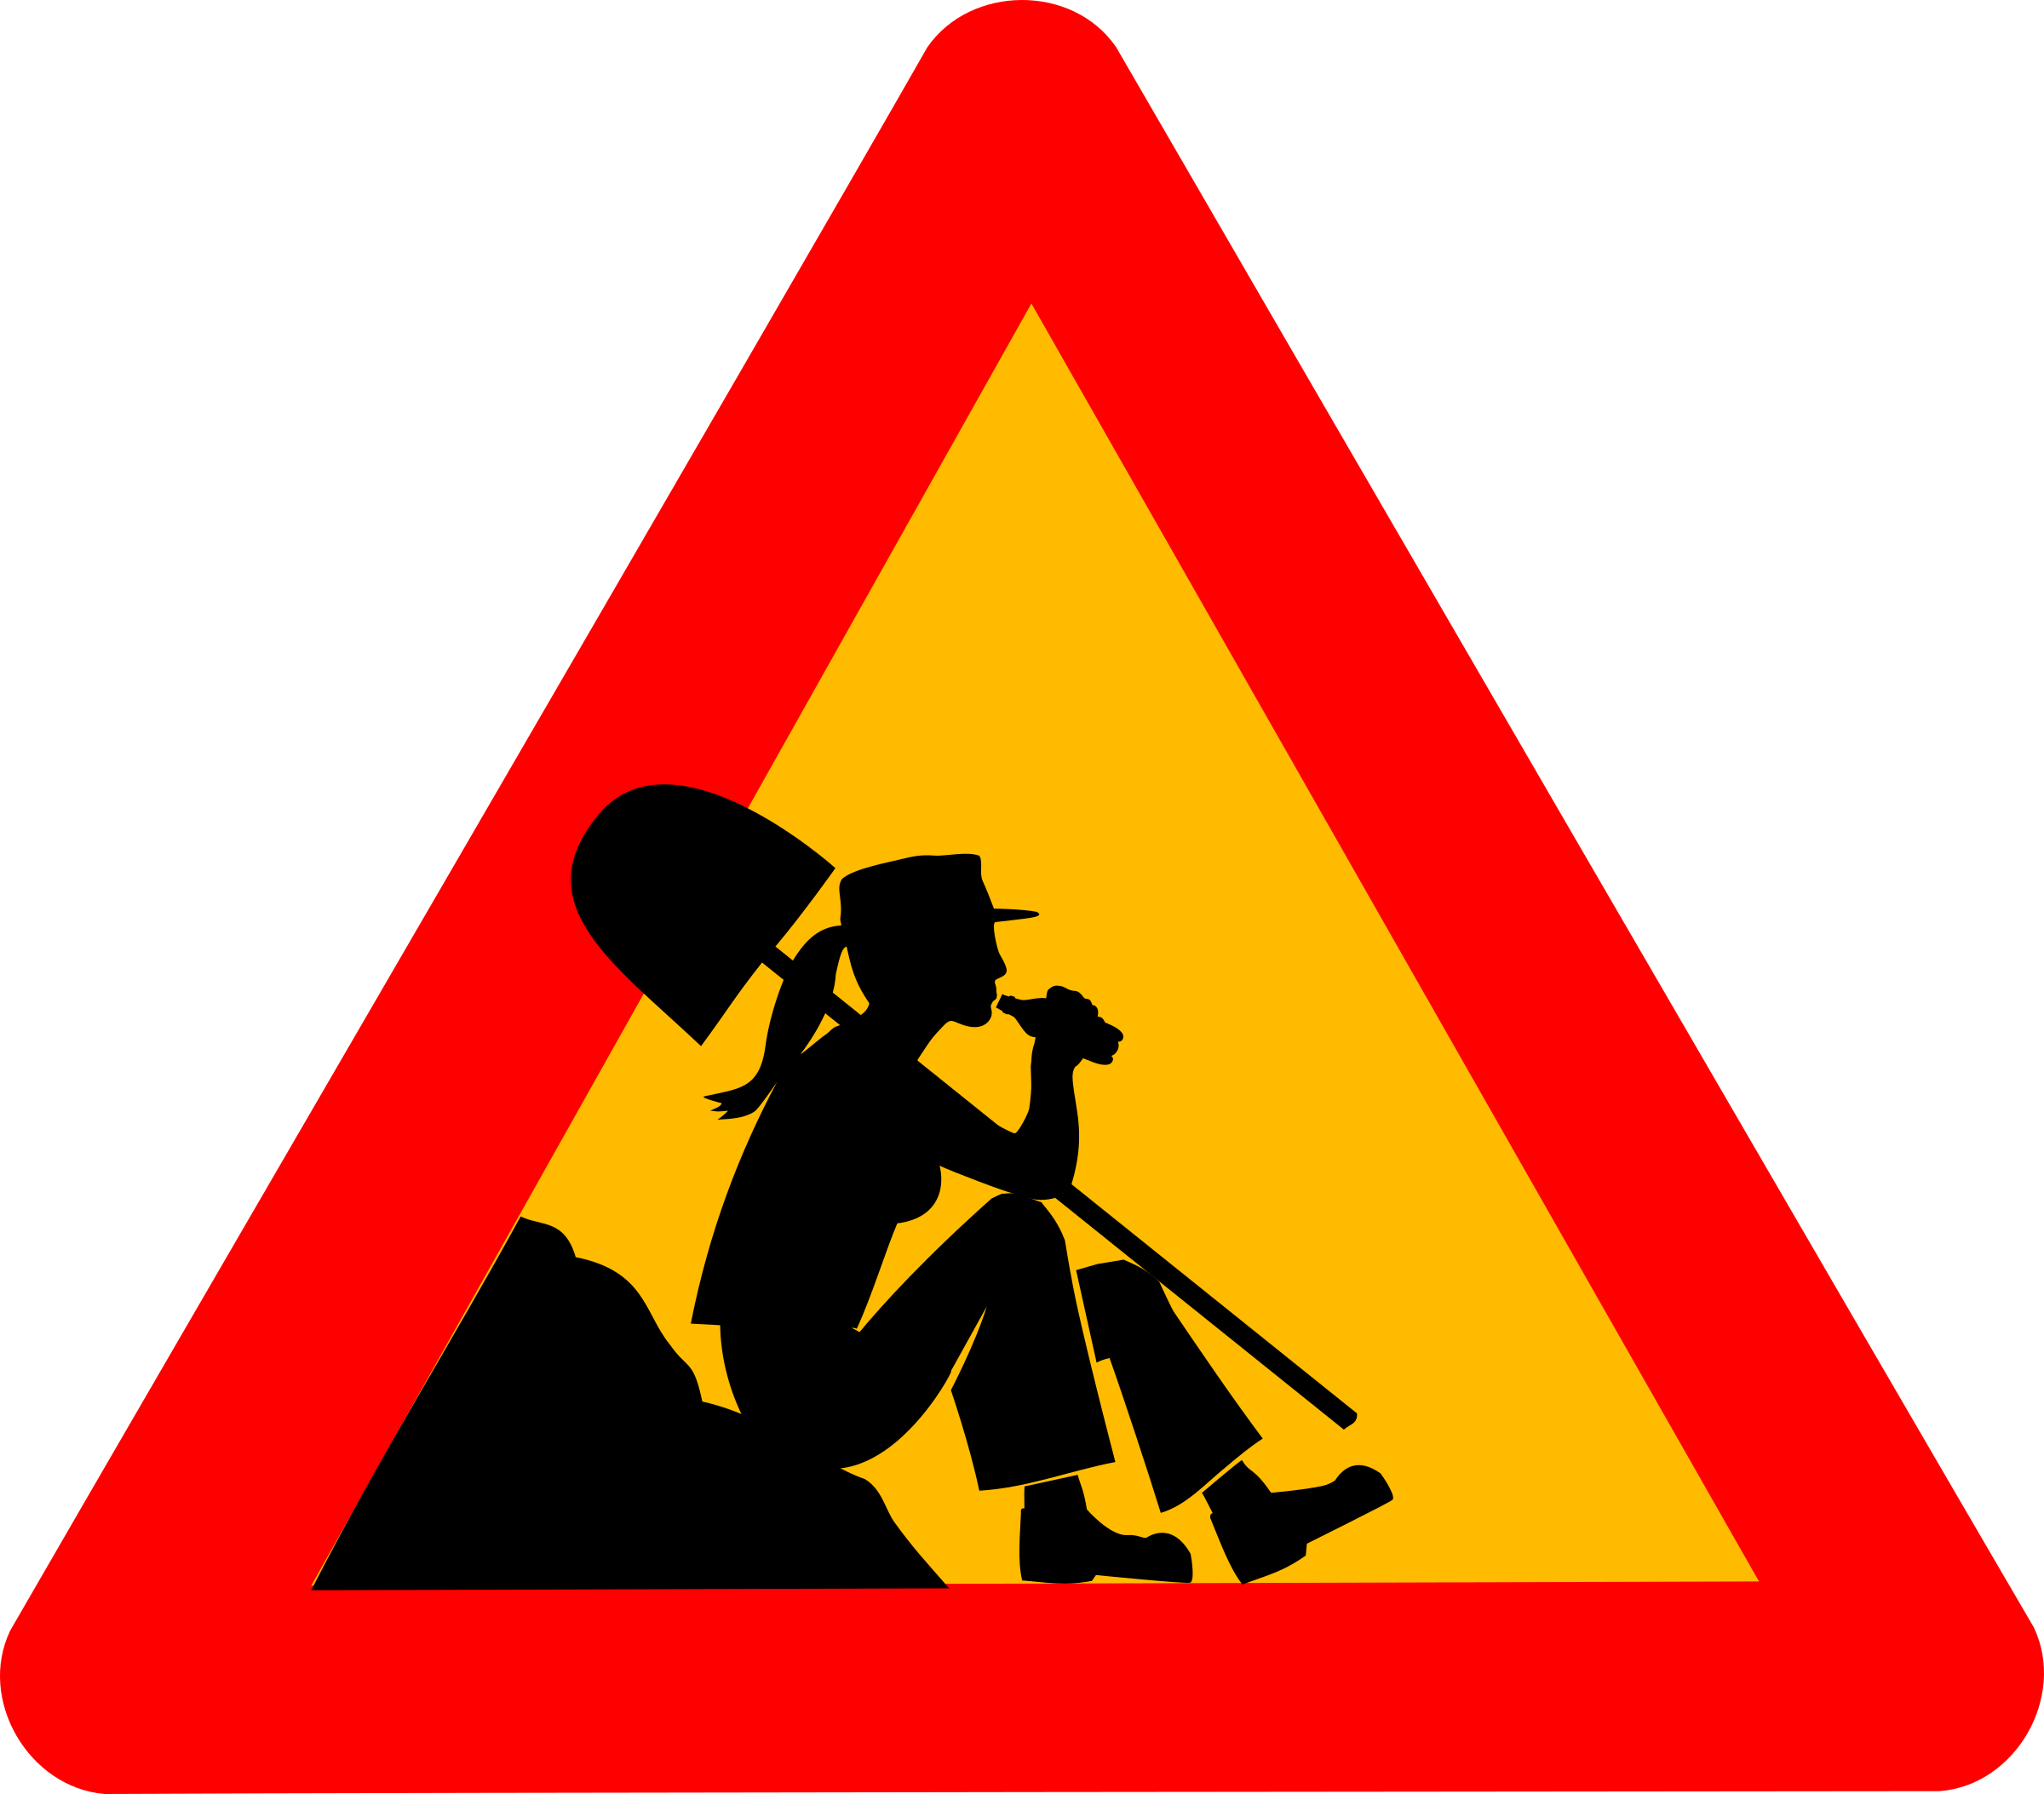 Working clipart icon. Woman at work big